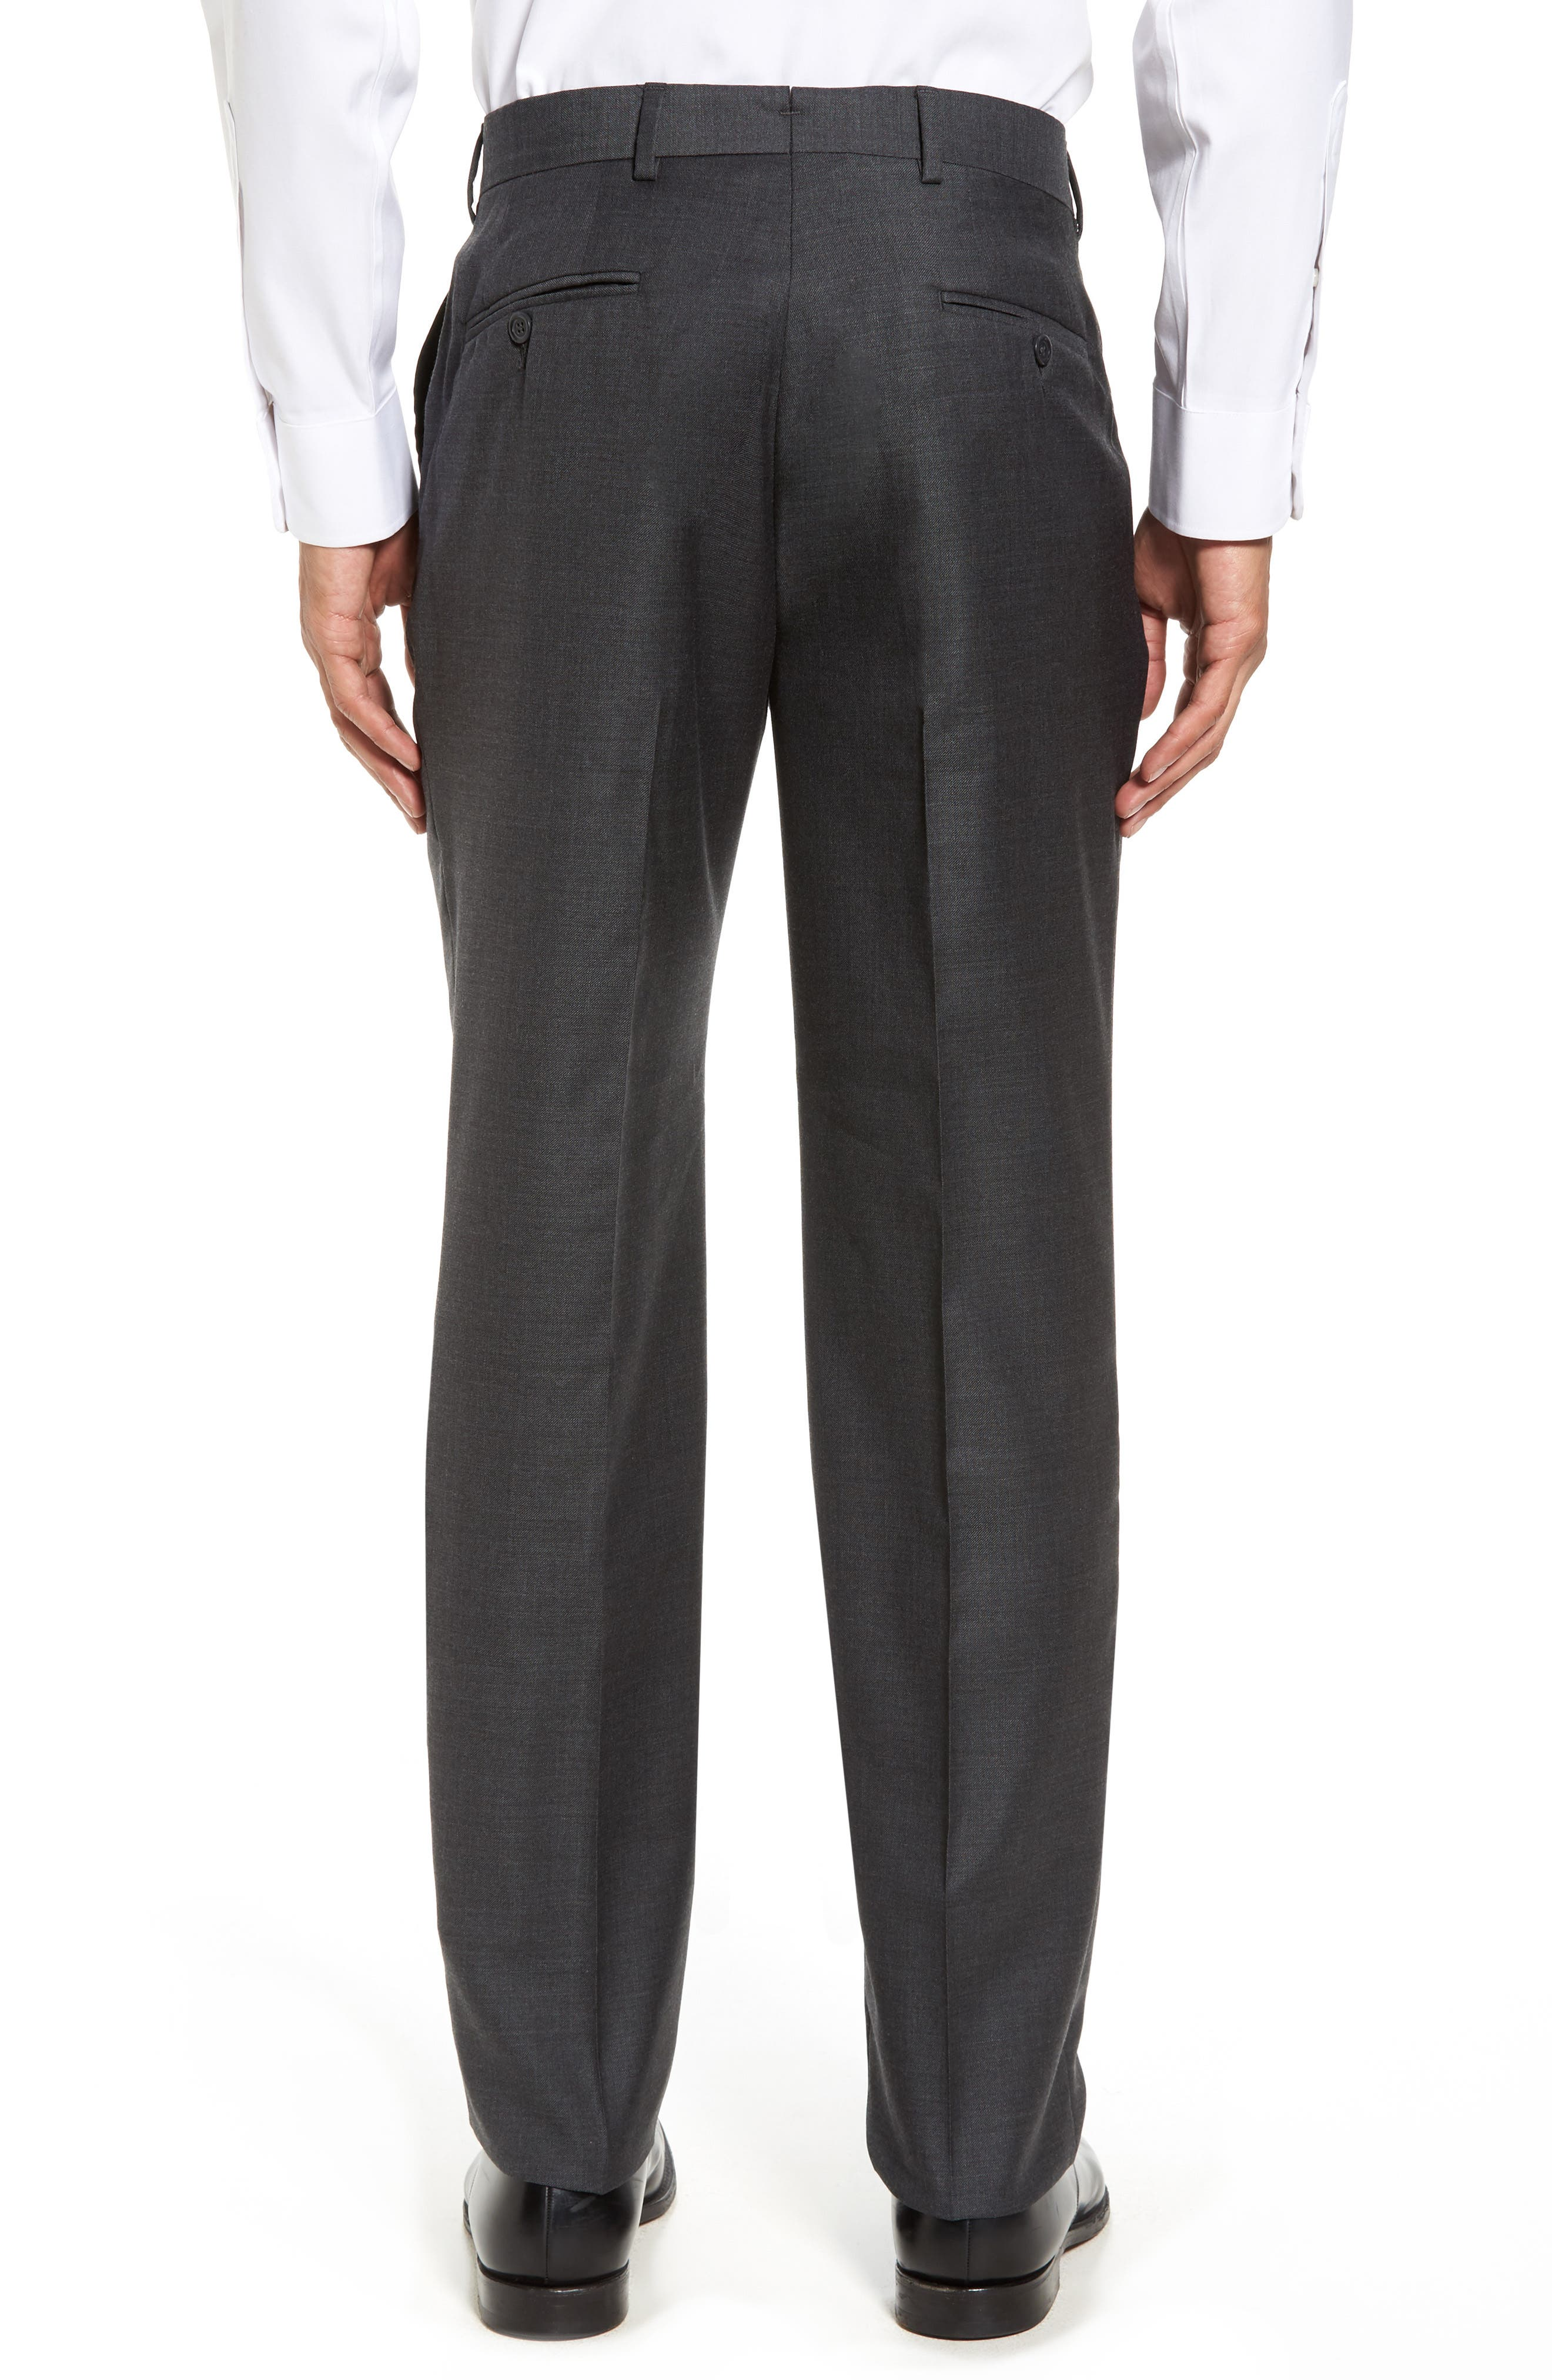 Flat Front Sharkskin Wool Trousers,                             Alternate thumbnail 3, color,                             025